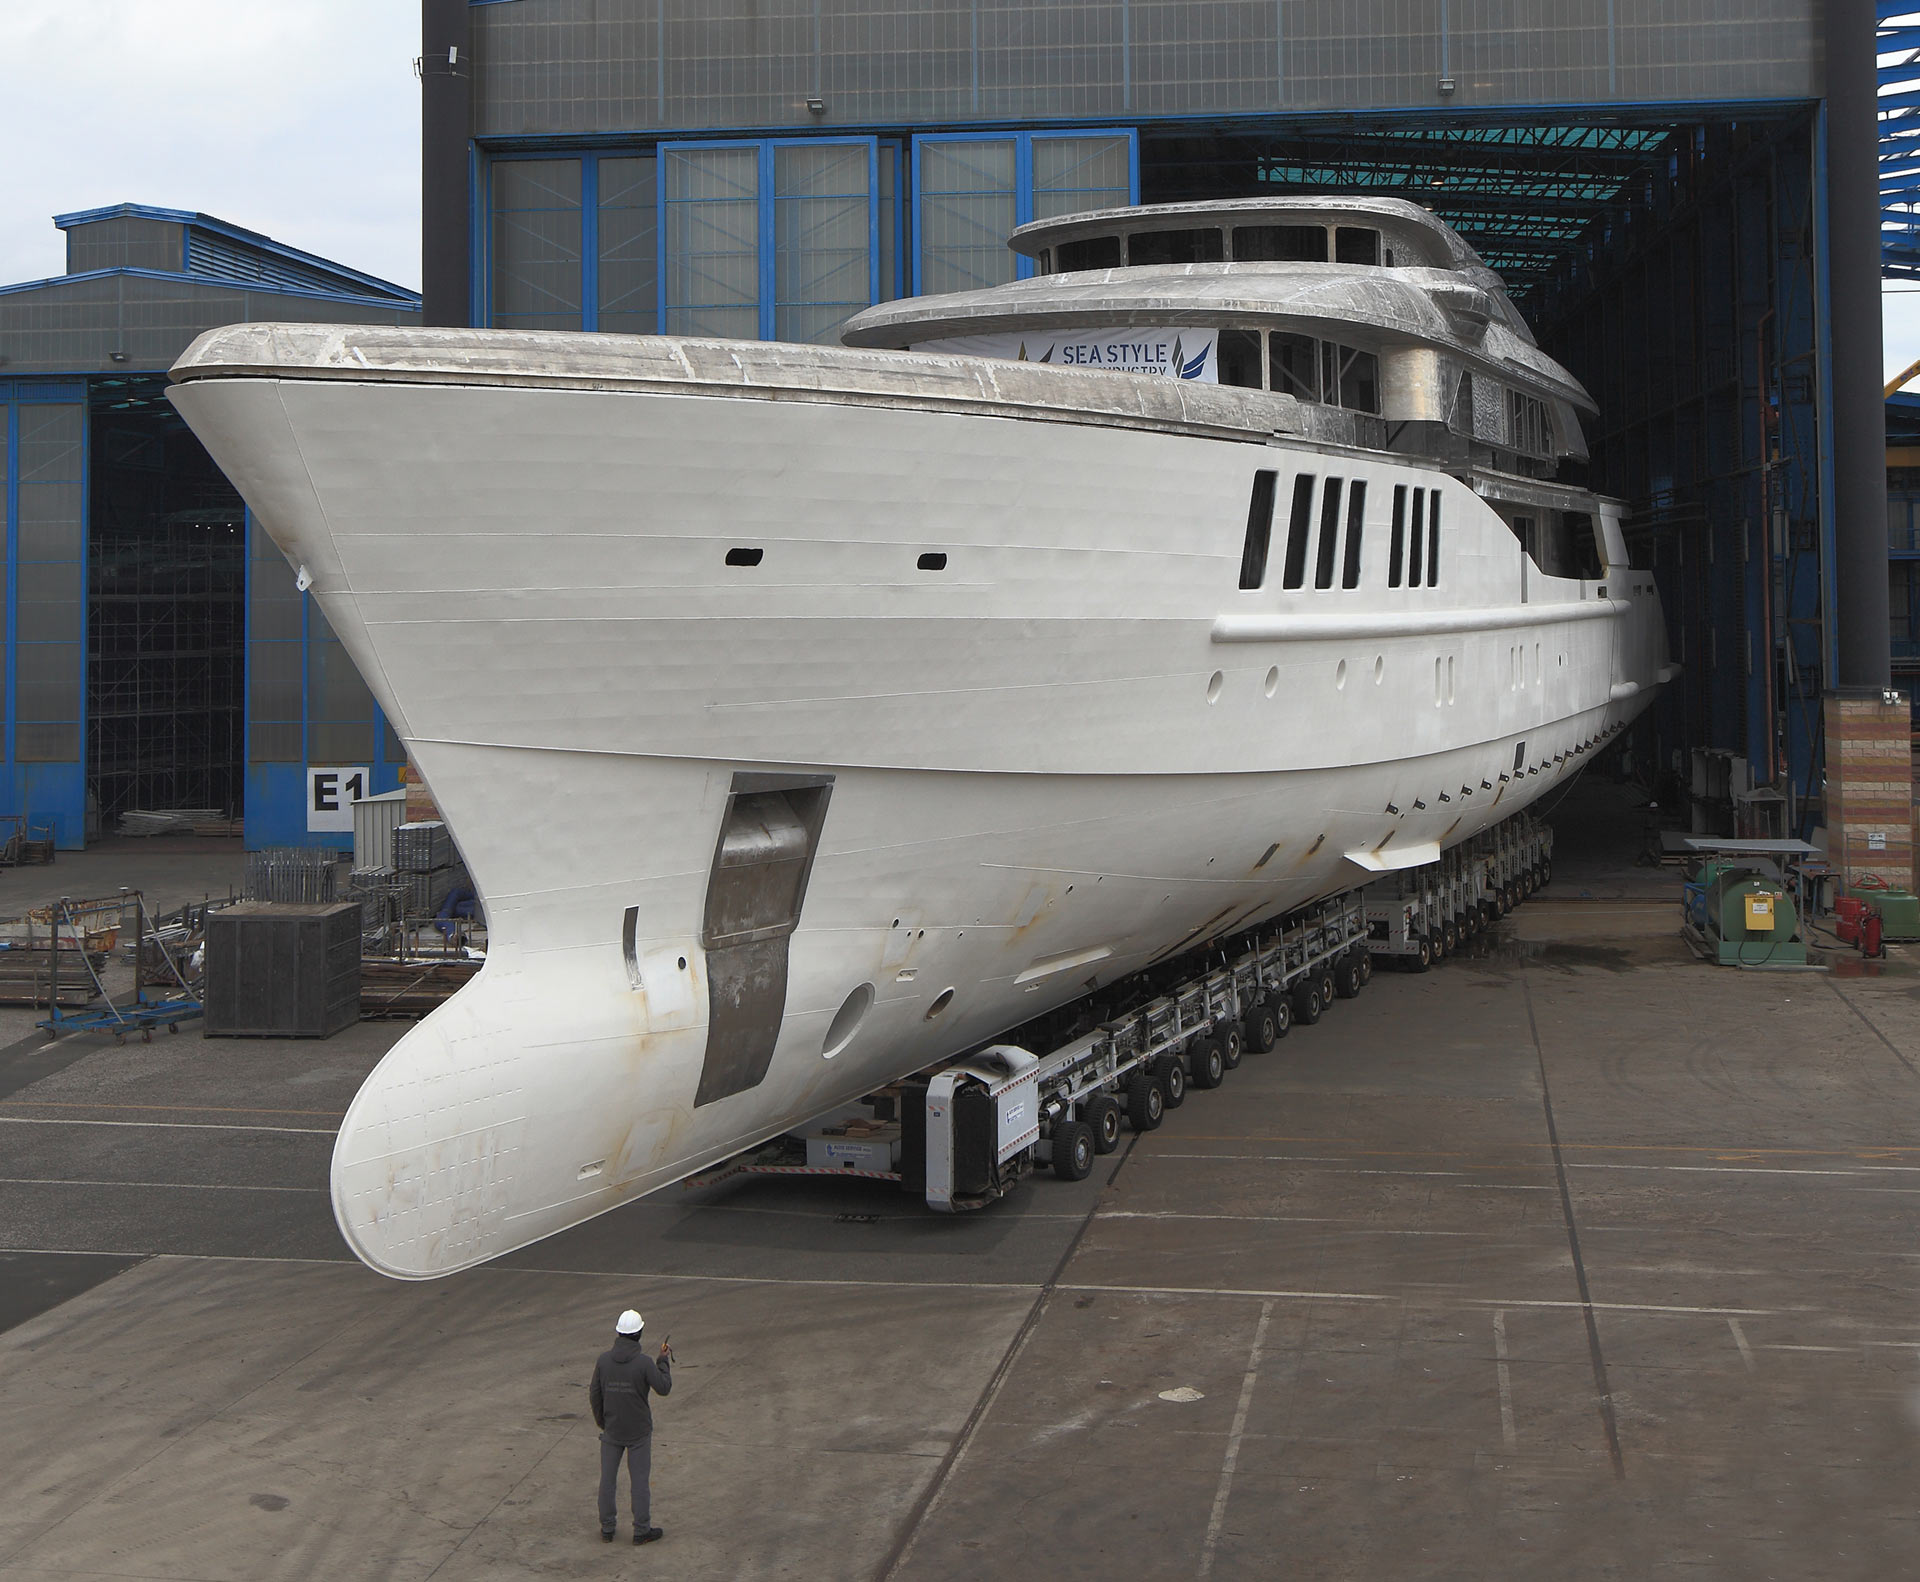 Benetti Fb269 M/Y Spectre: Transfer Completed Of The  69 Meter Megayacht For Out Fitting